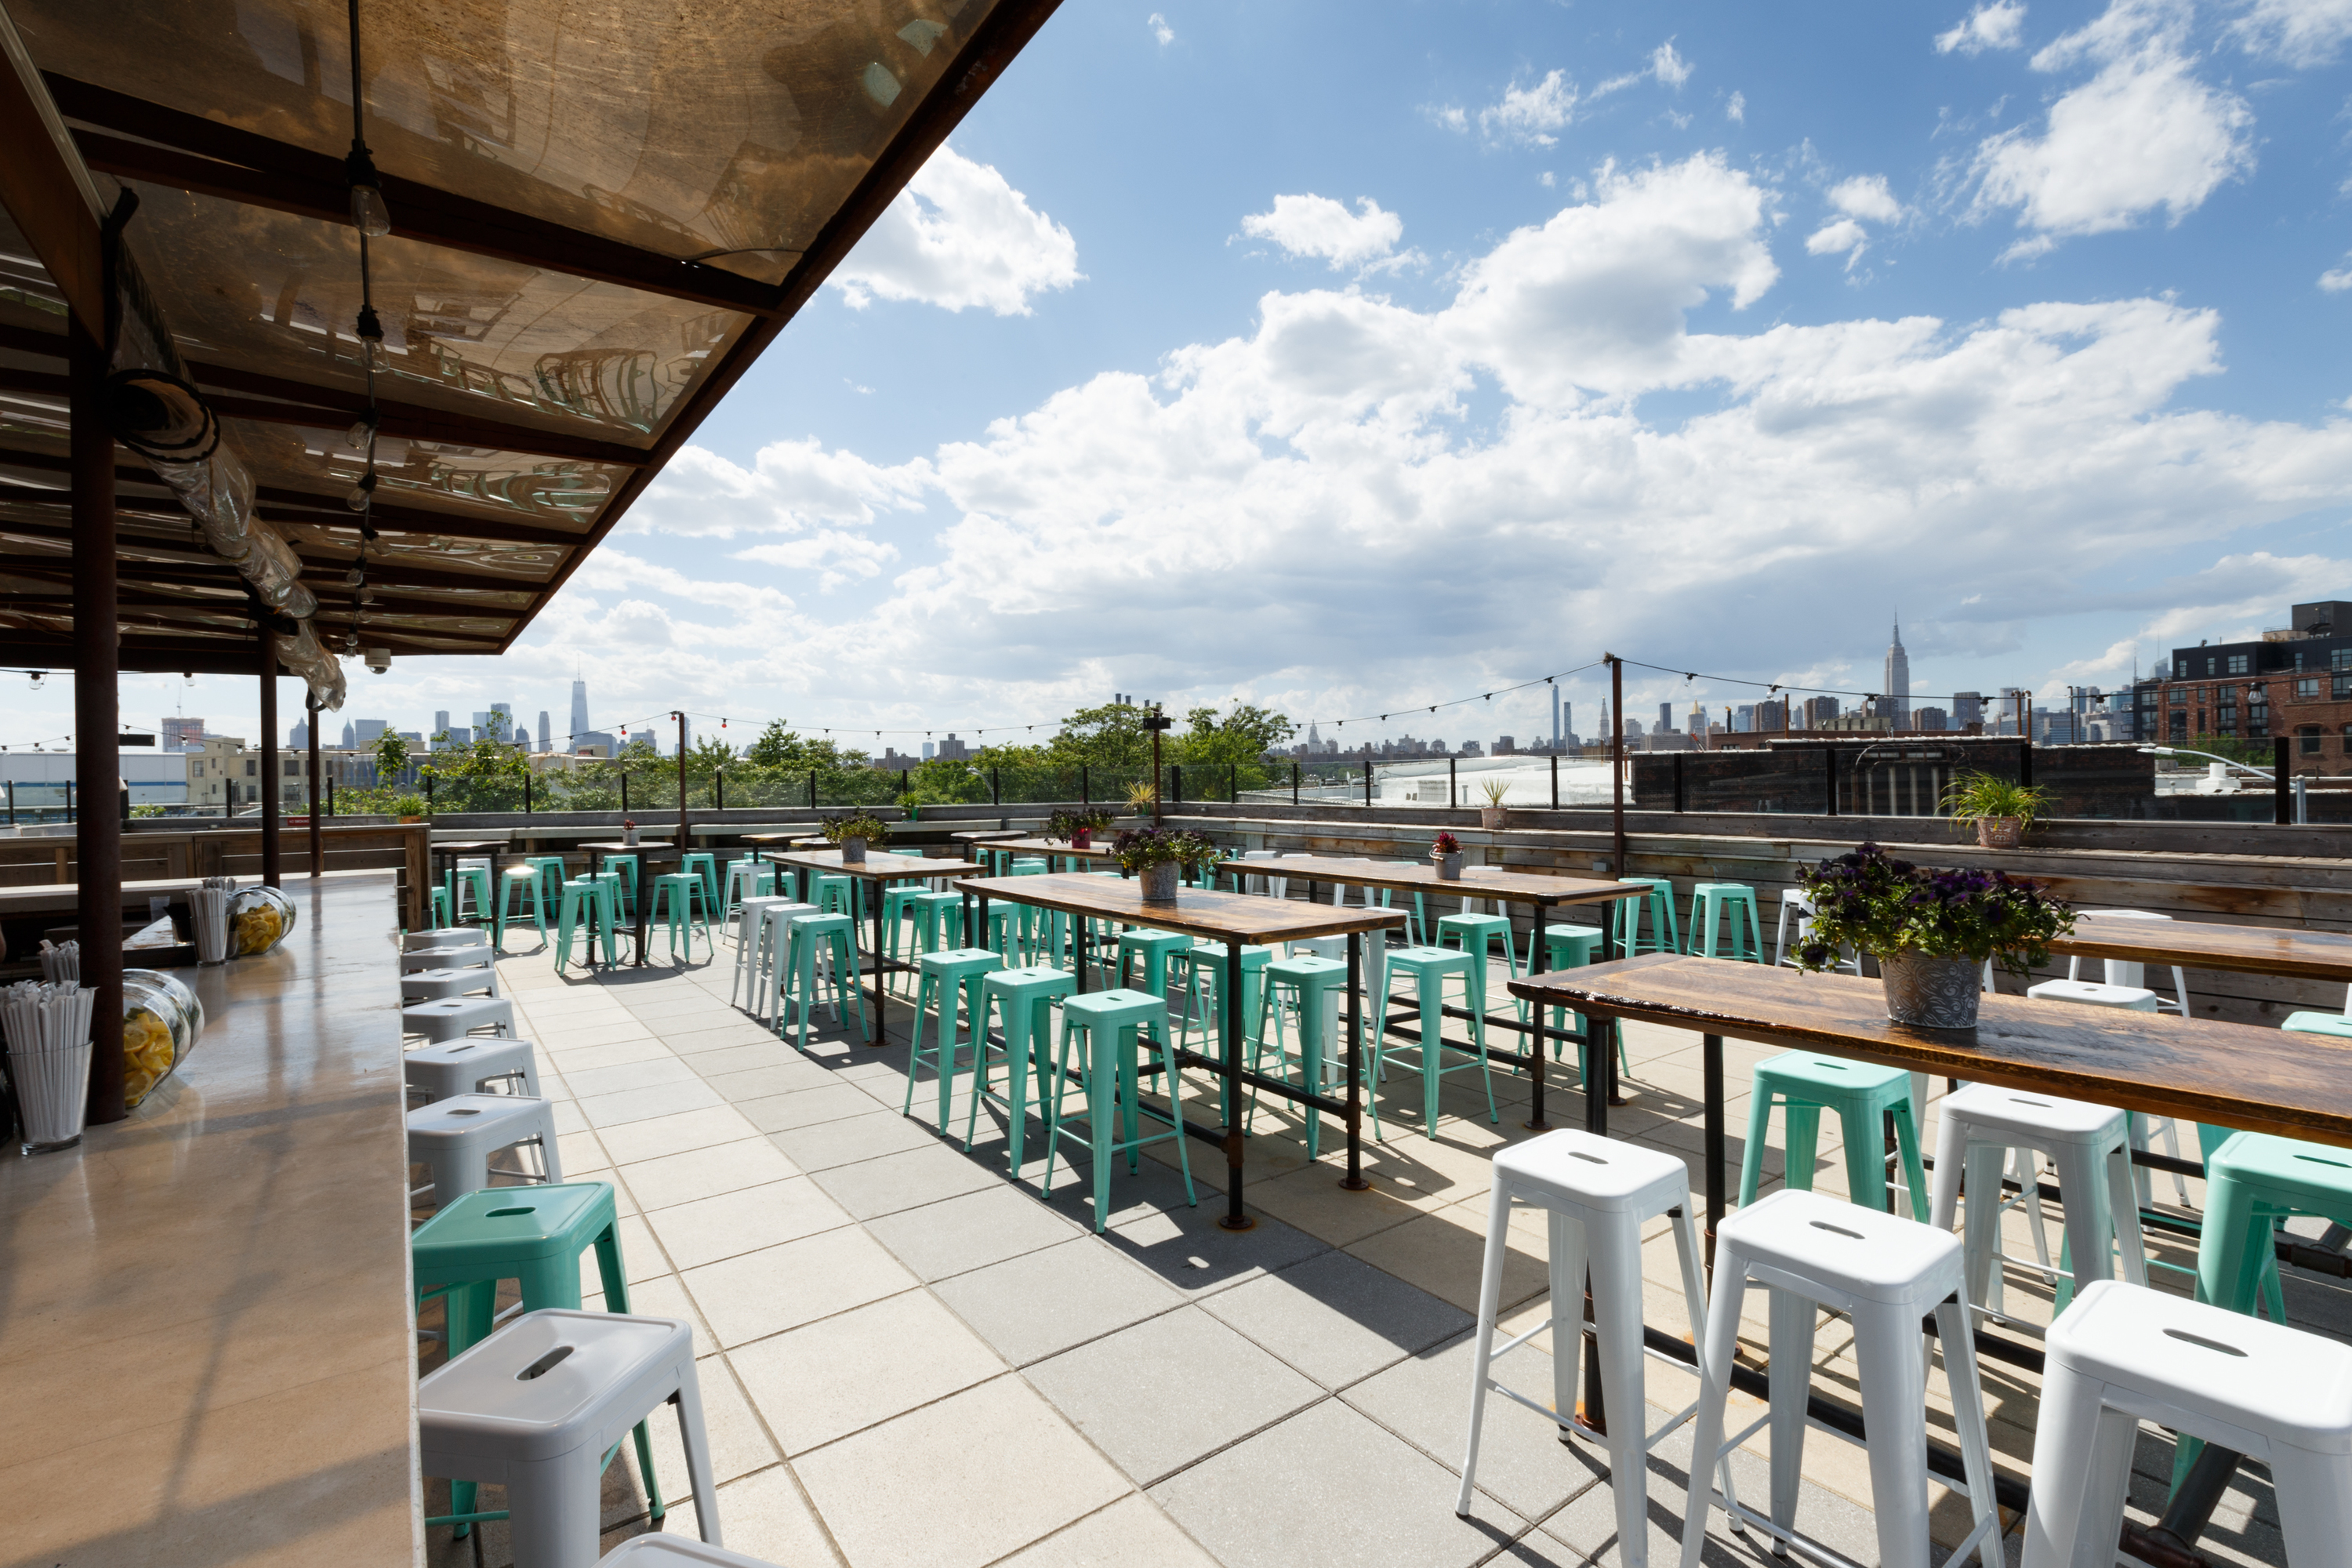 Dine on a rooftop